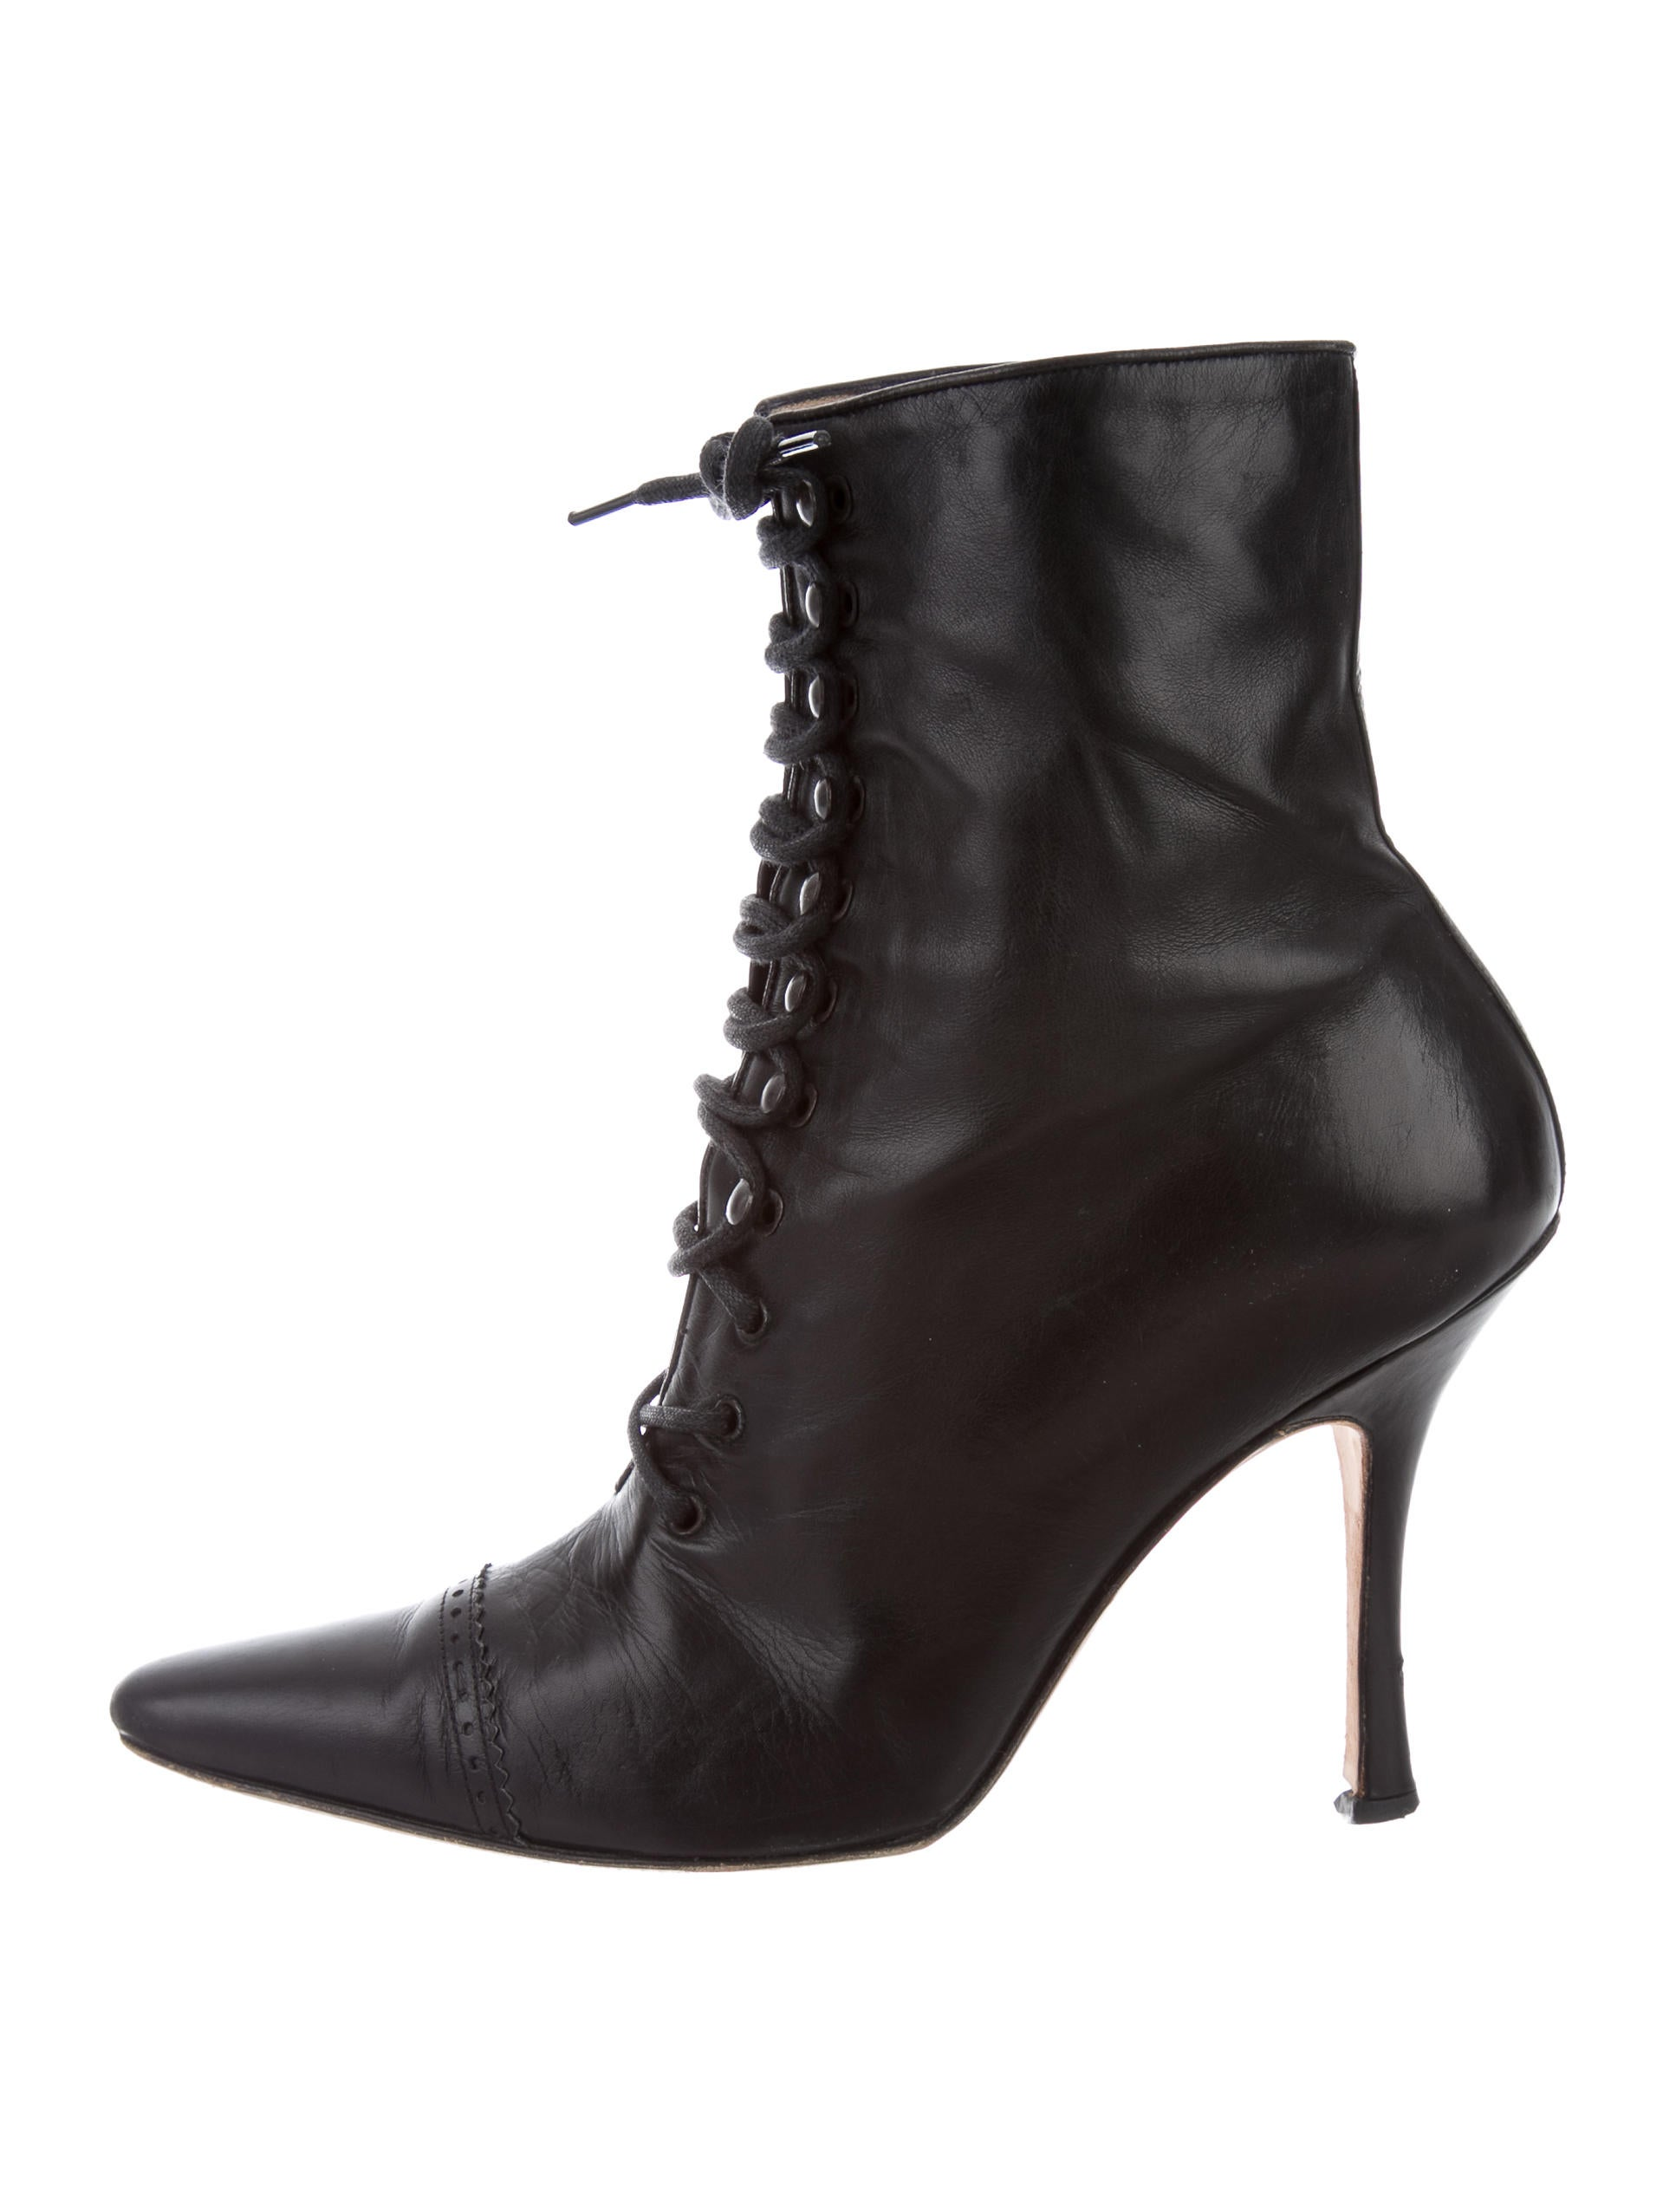 Manolo Blahnik Leather Ankle Boots - Shoes - MOO61968 ...